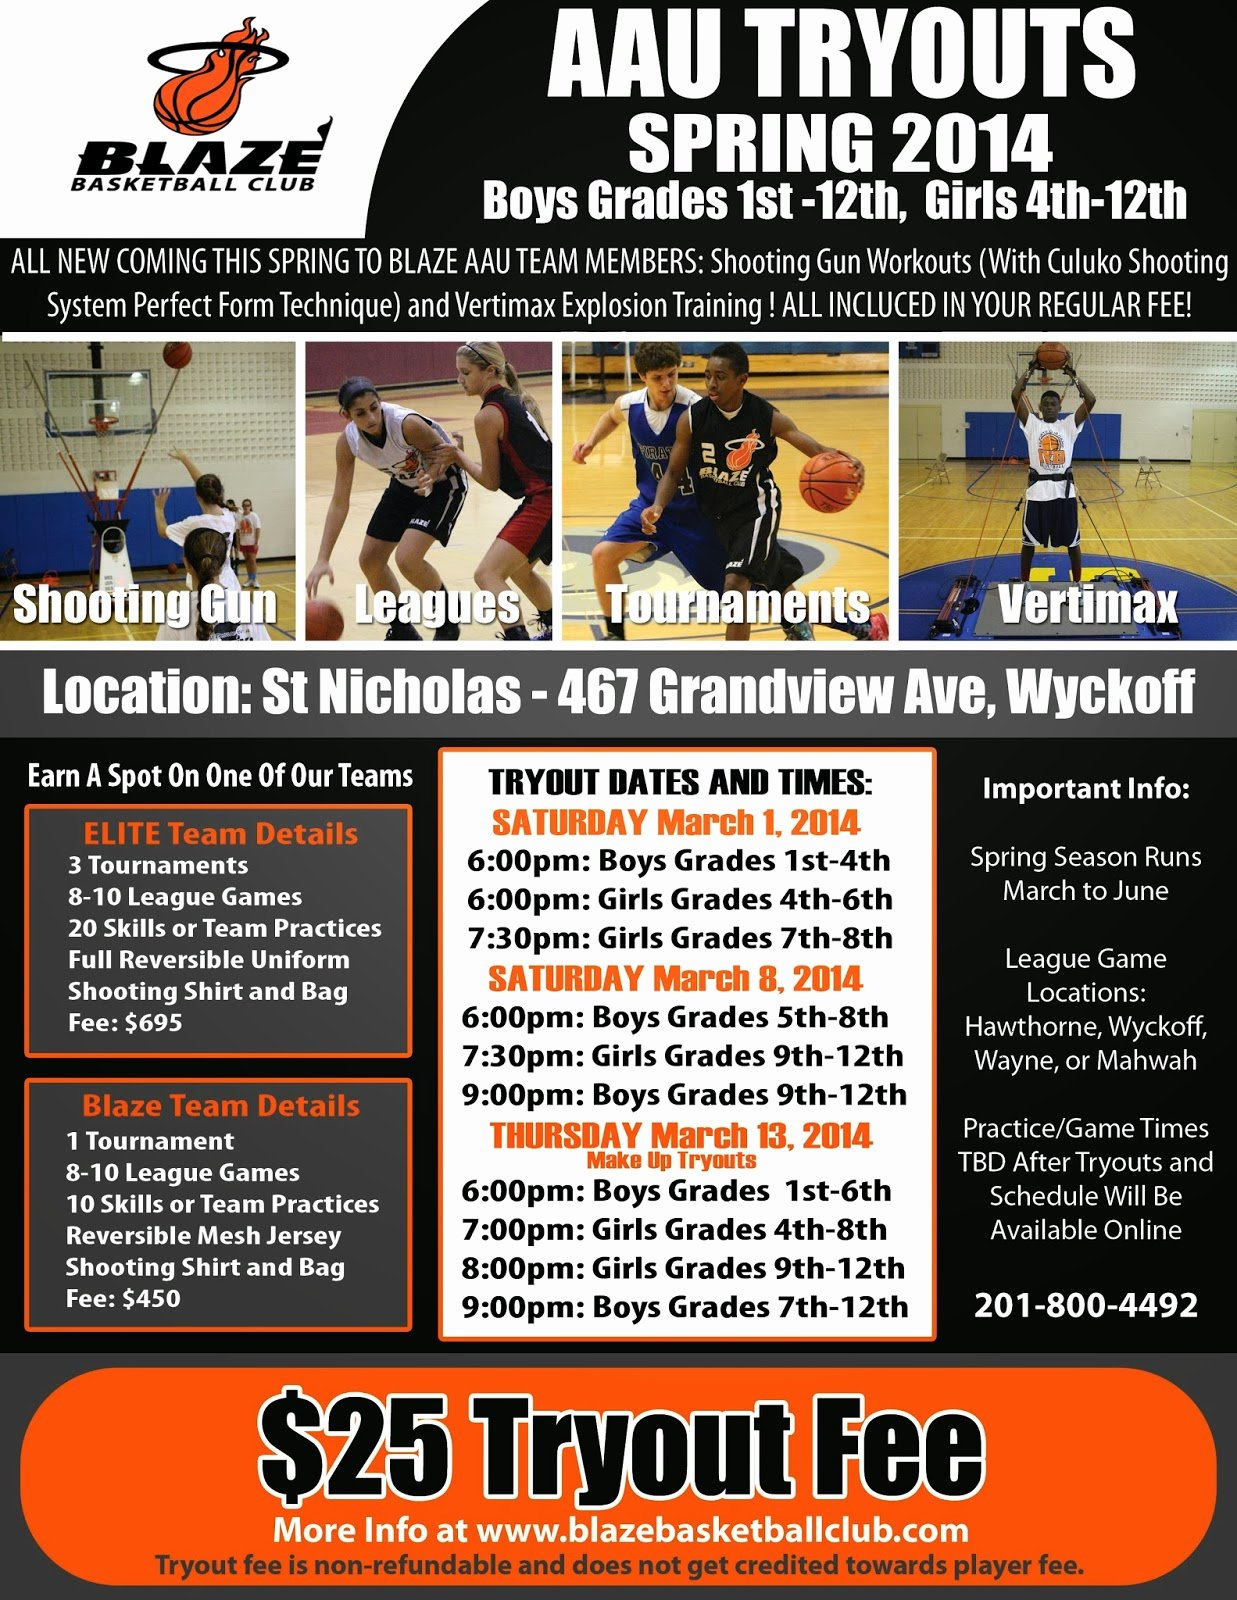 Basketball Tryout Flyer Template Best Of Aau Basketball Tryouts